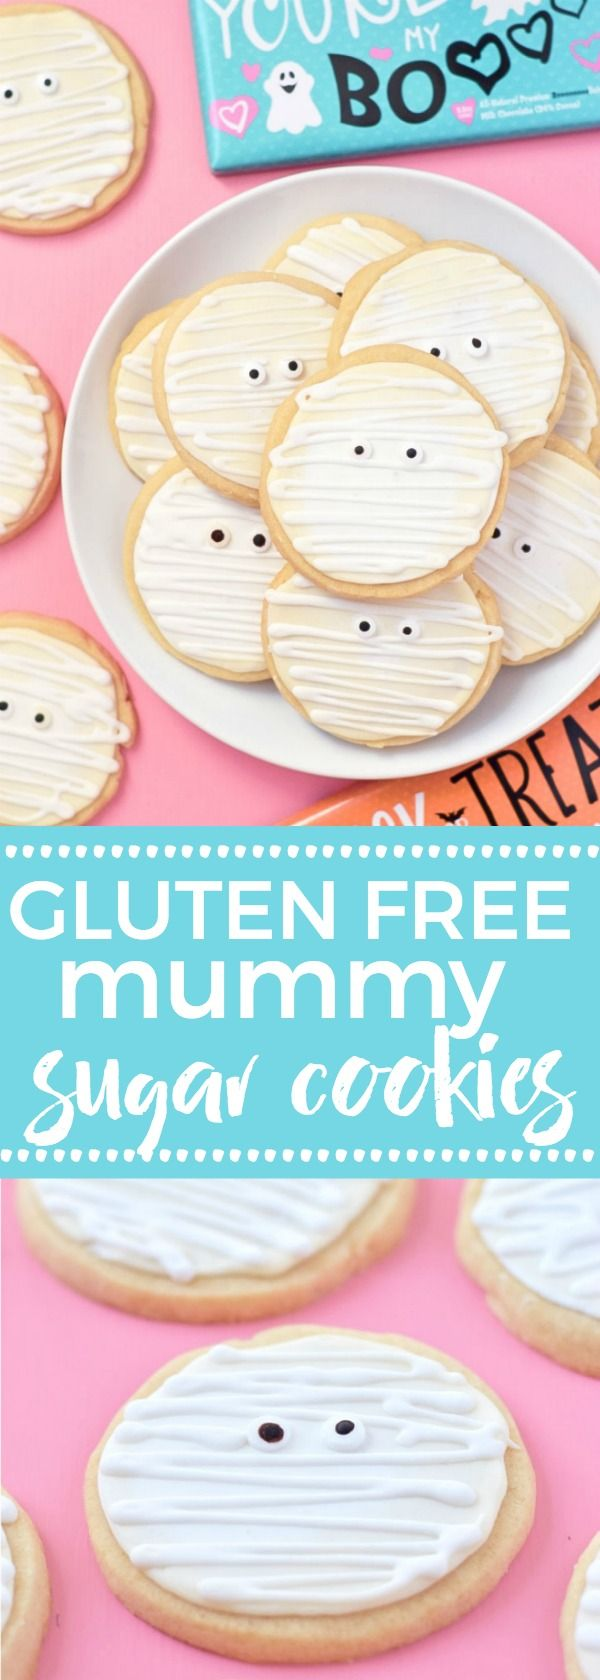 Gluten Free Mummy Cookies for Halloween